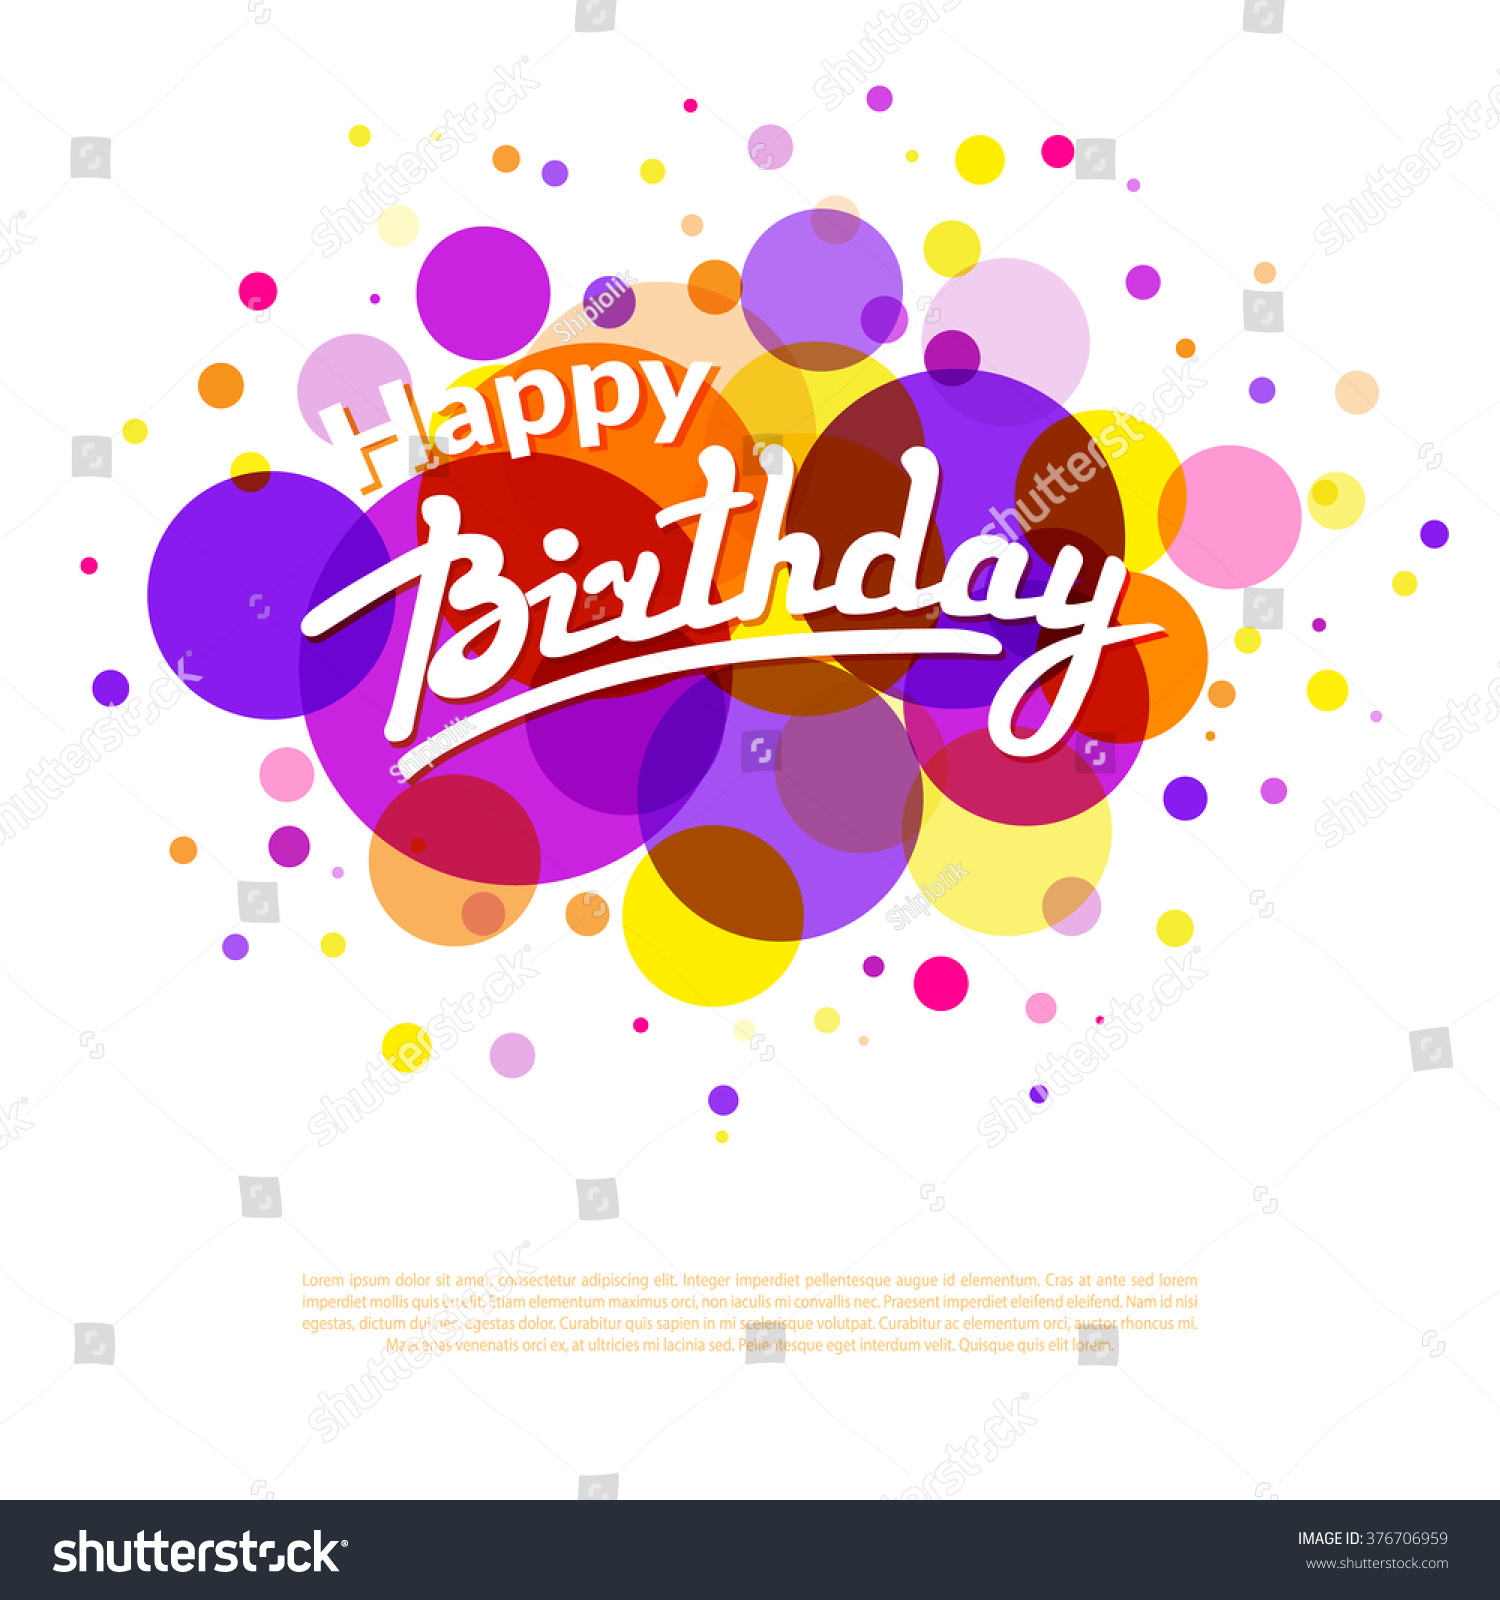 Happy Birthday Greeting Card Template On Background With Colorful Circles  And Textbox  Happy Birthday Word Template